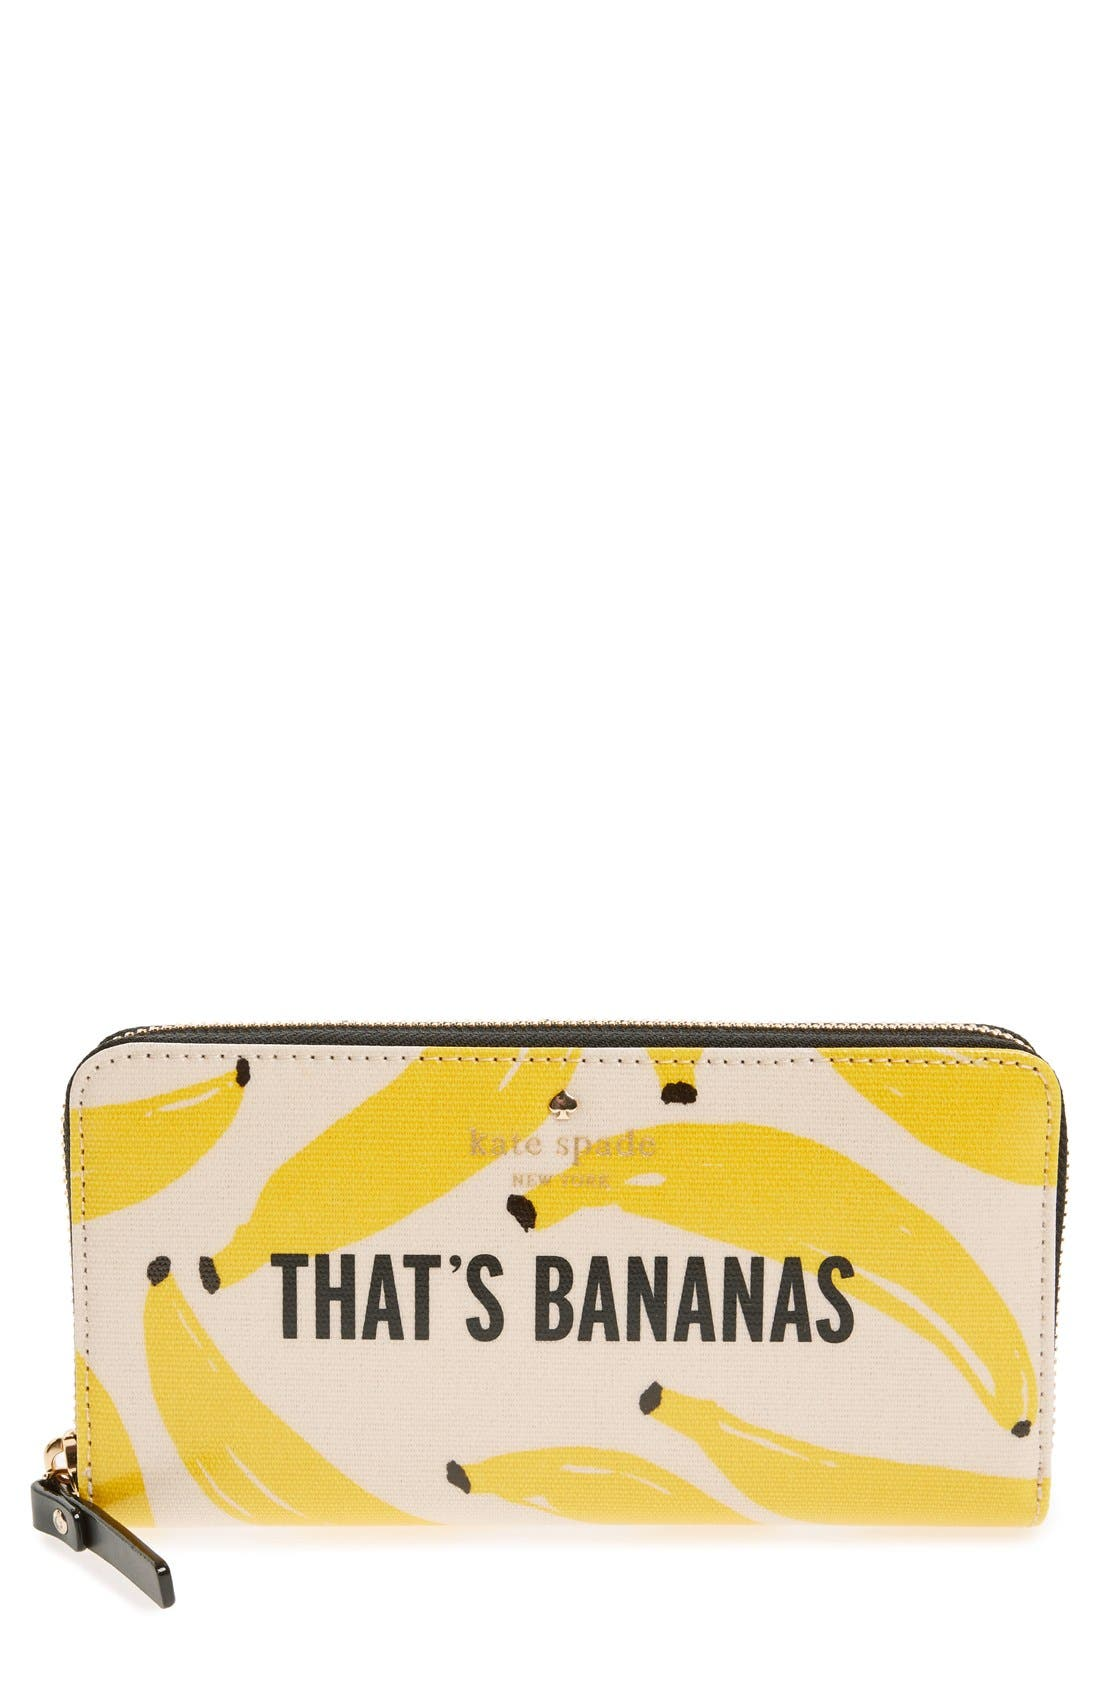 Alternate Image 1 Selected - kate spade new york 'that's bananas - lacey' zip around wallet